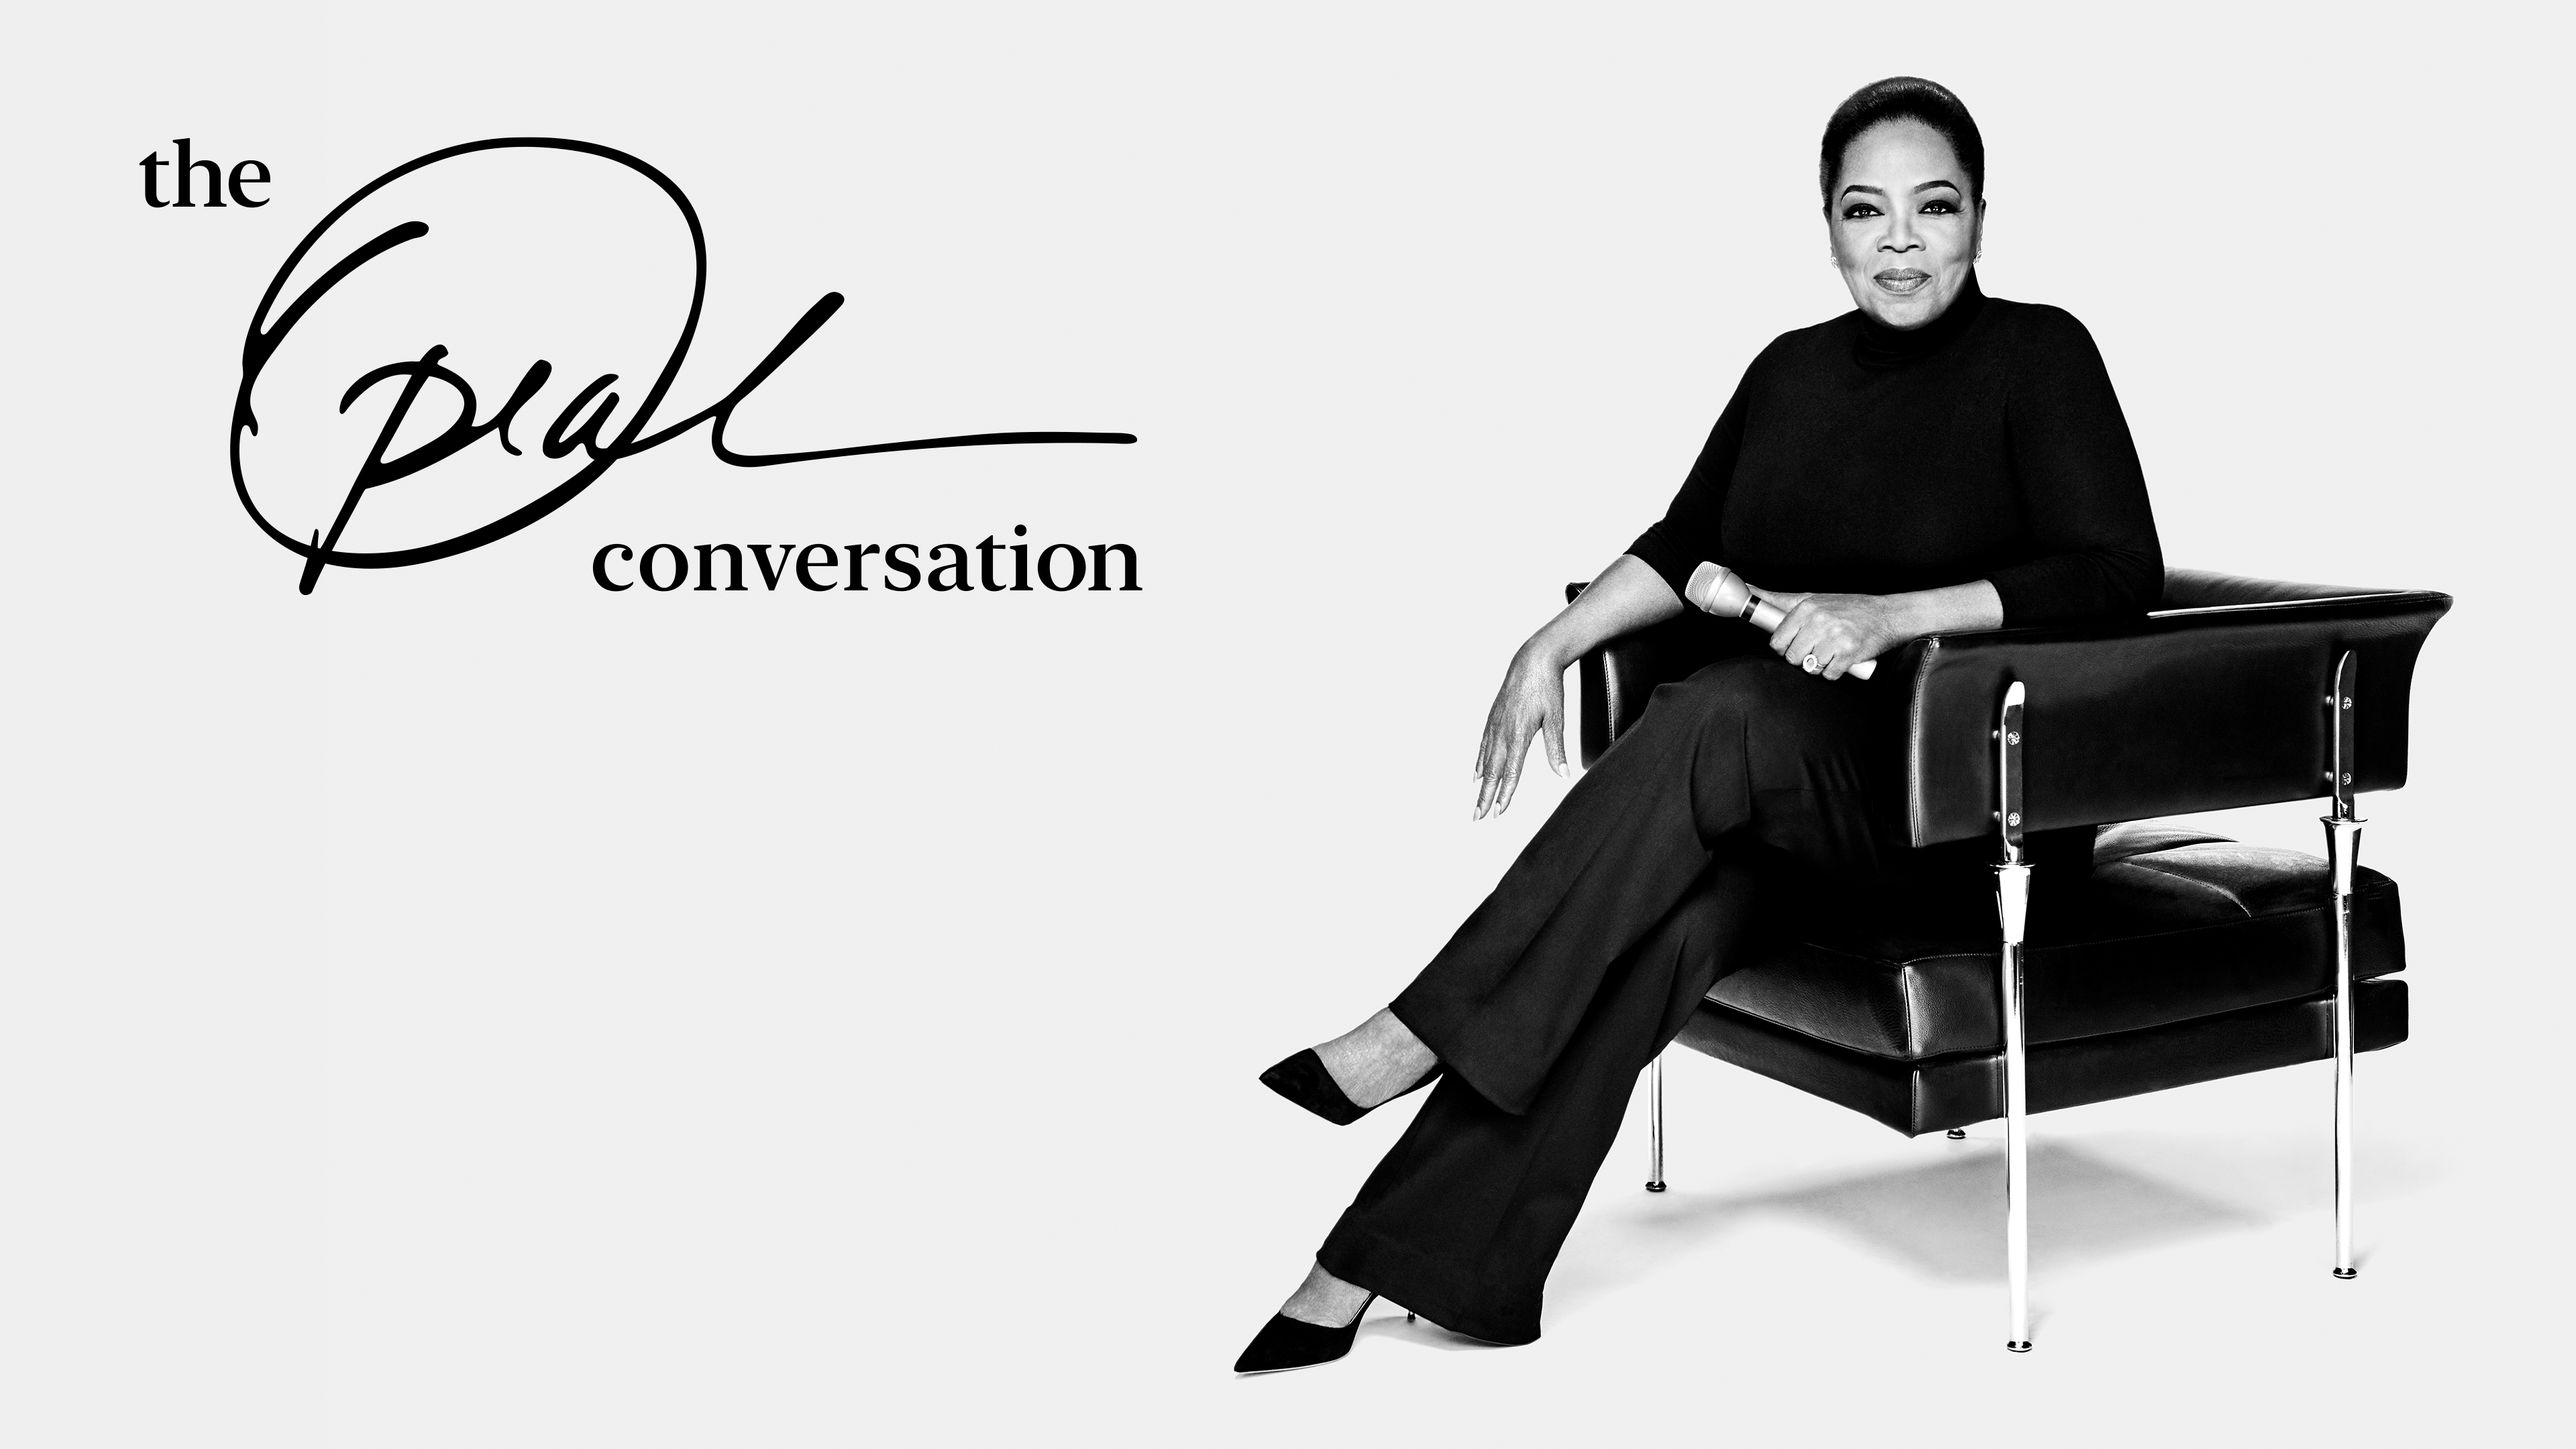 Oprah Winfrey Brings New Interview Series 'The Oprah Conversations' to Apple TV+